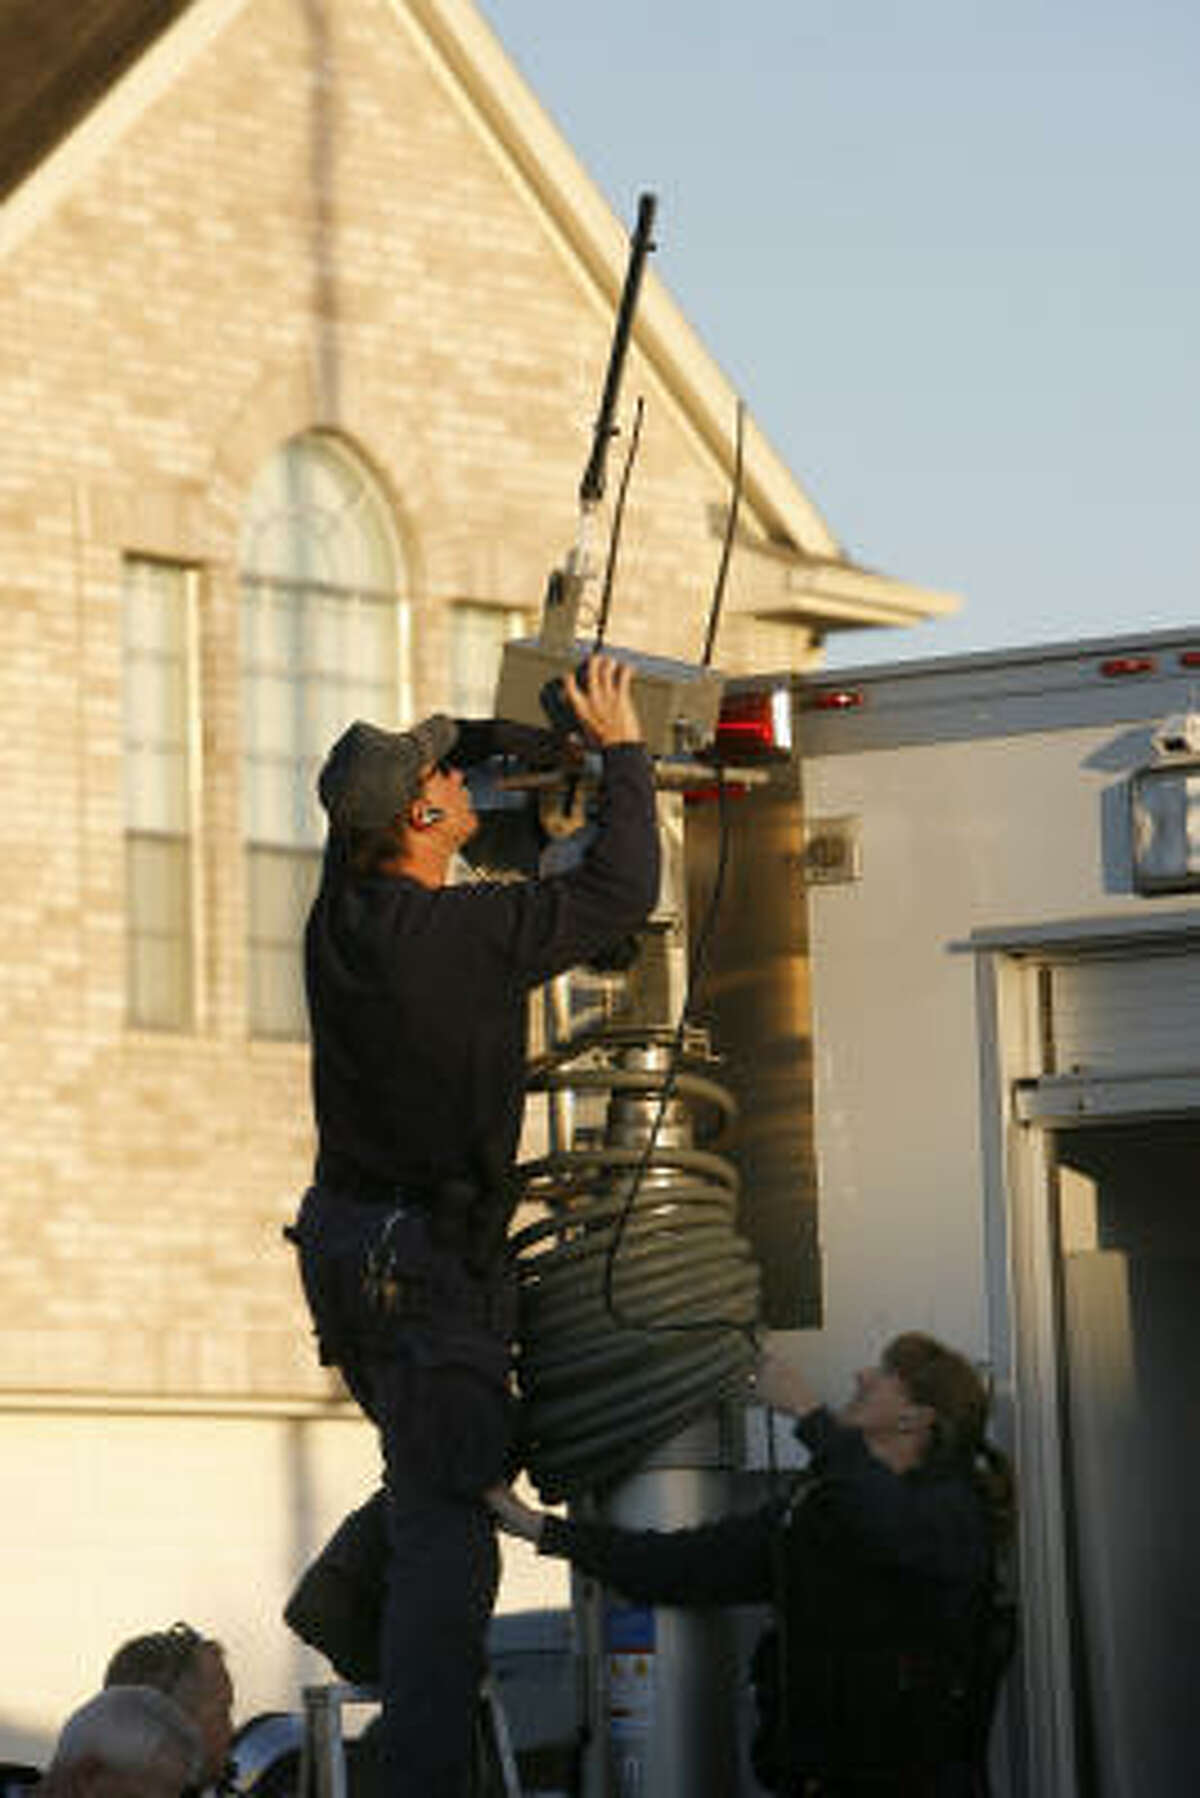 An officer installs a surveillance device on a SWAT command unit trailer during the standoff in the 21000 block of Covington Bridge in Spring.